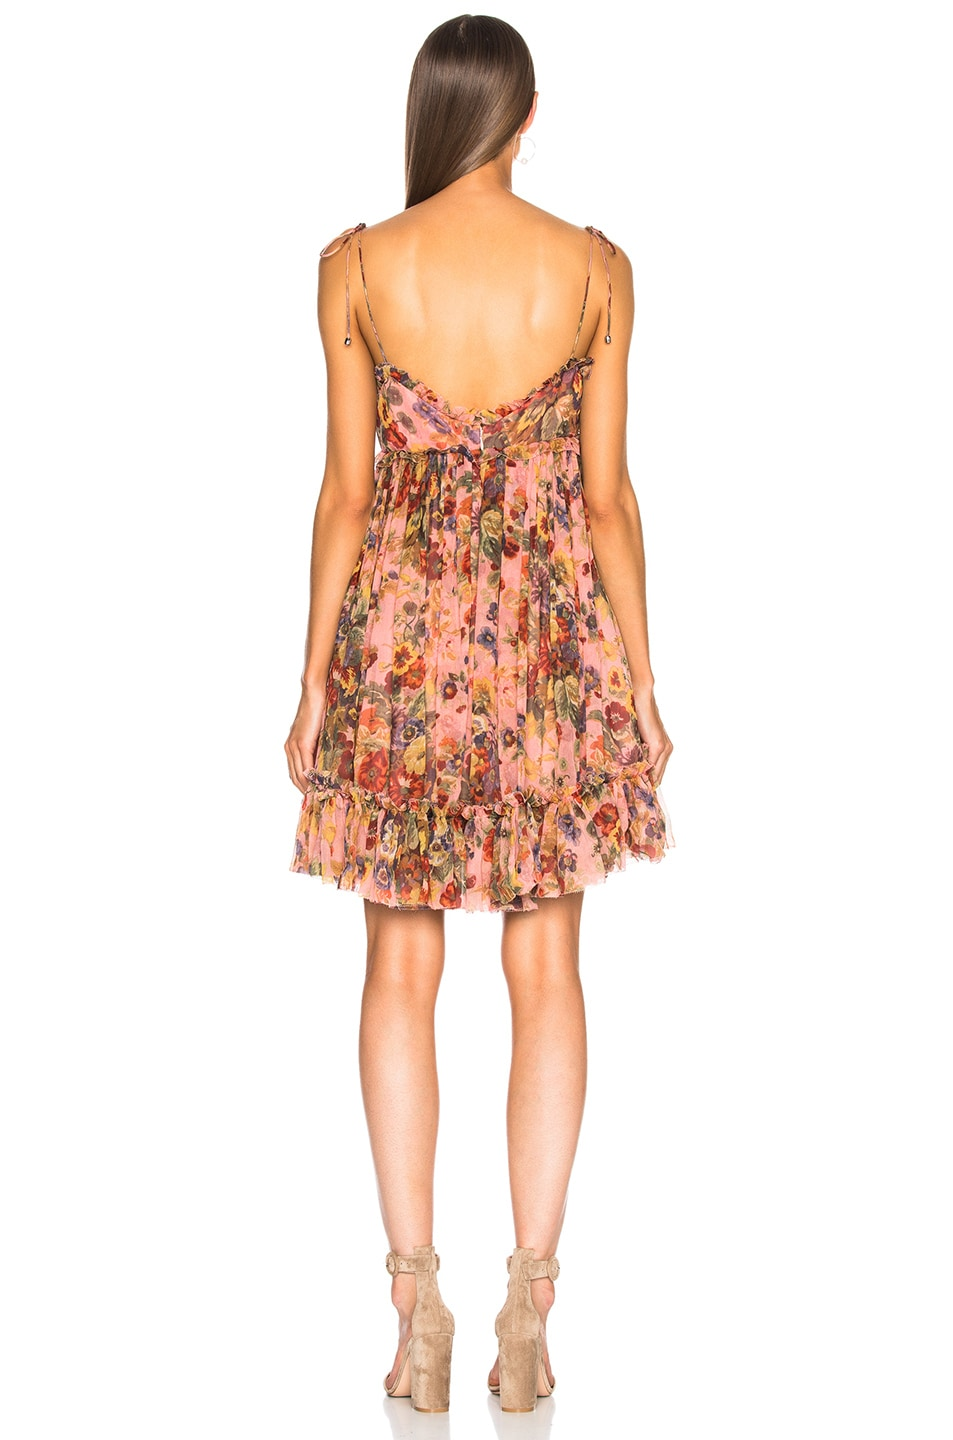 0cad3e1dd10e Image 3 of Zimmermann Lovelorn Frill Mini Dress in Pink Floral